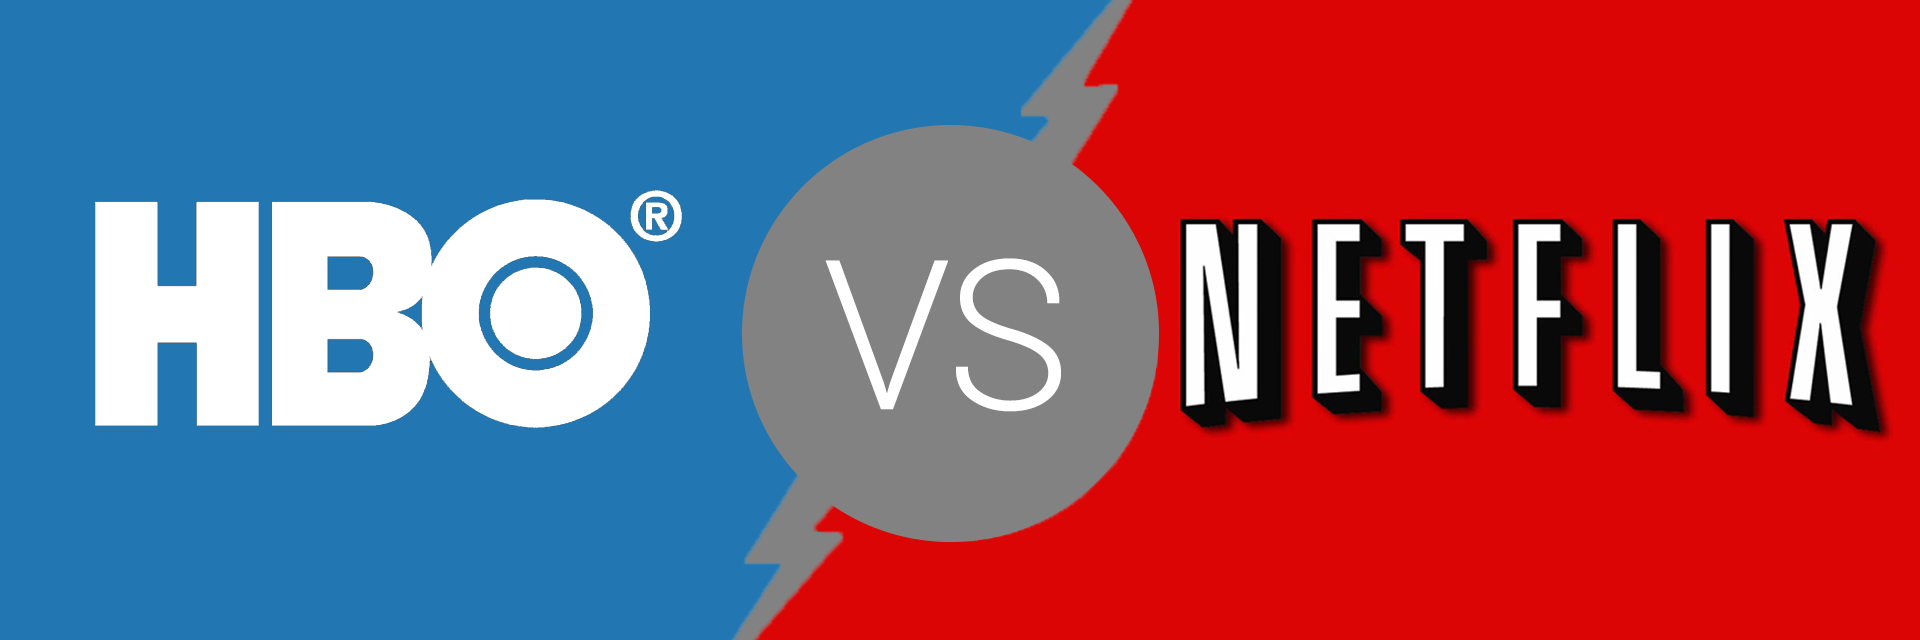 Is HBO taking Netflix Spain Down? - The Truth